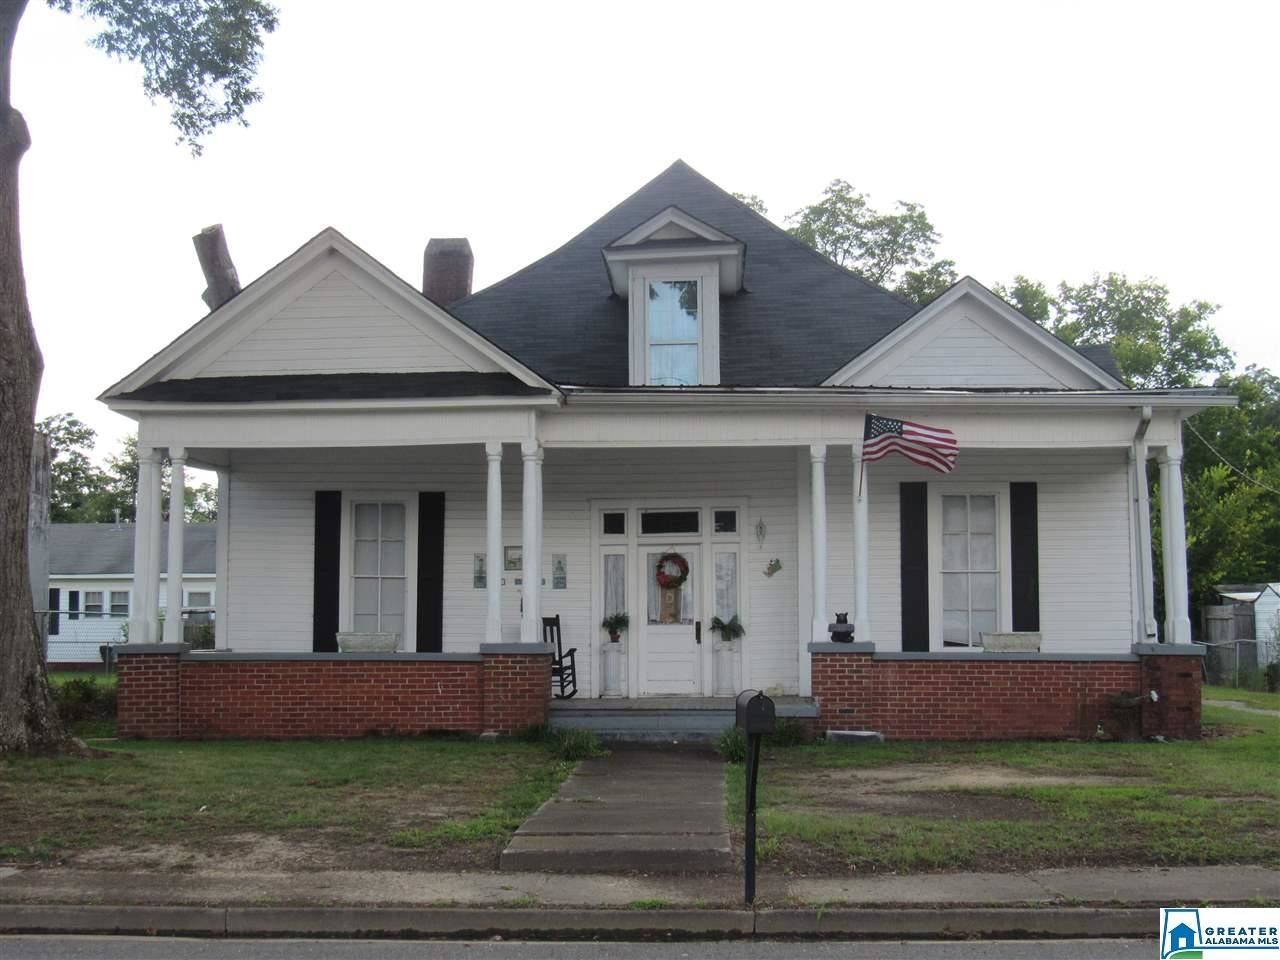 303 N Center Ave, Piedmont, AL 36272 - MLS#: 858486